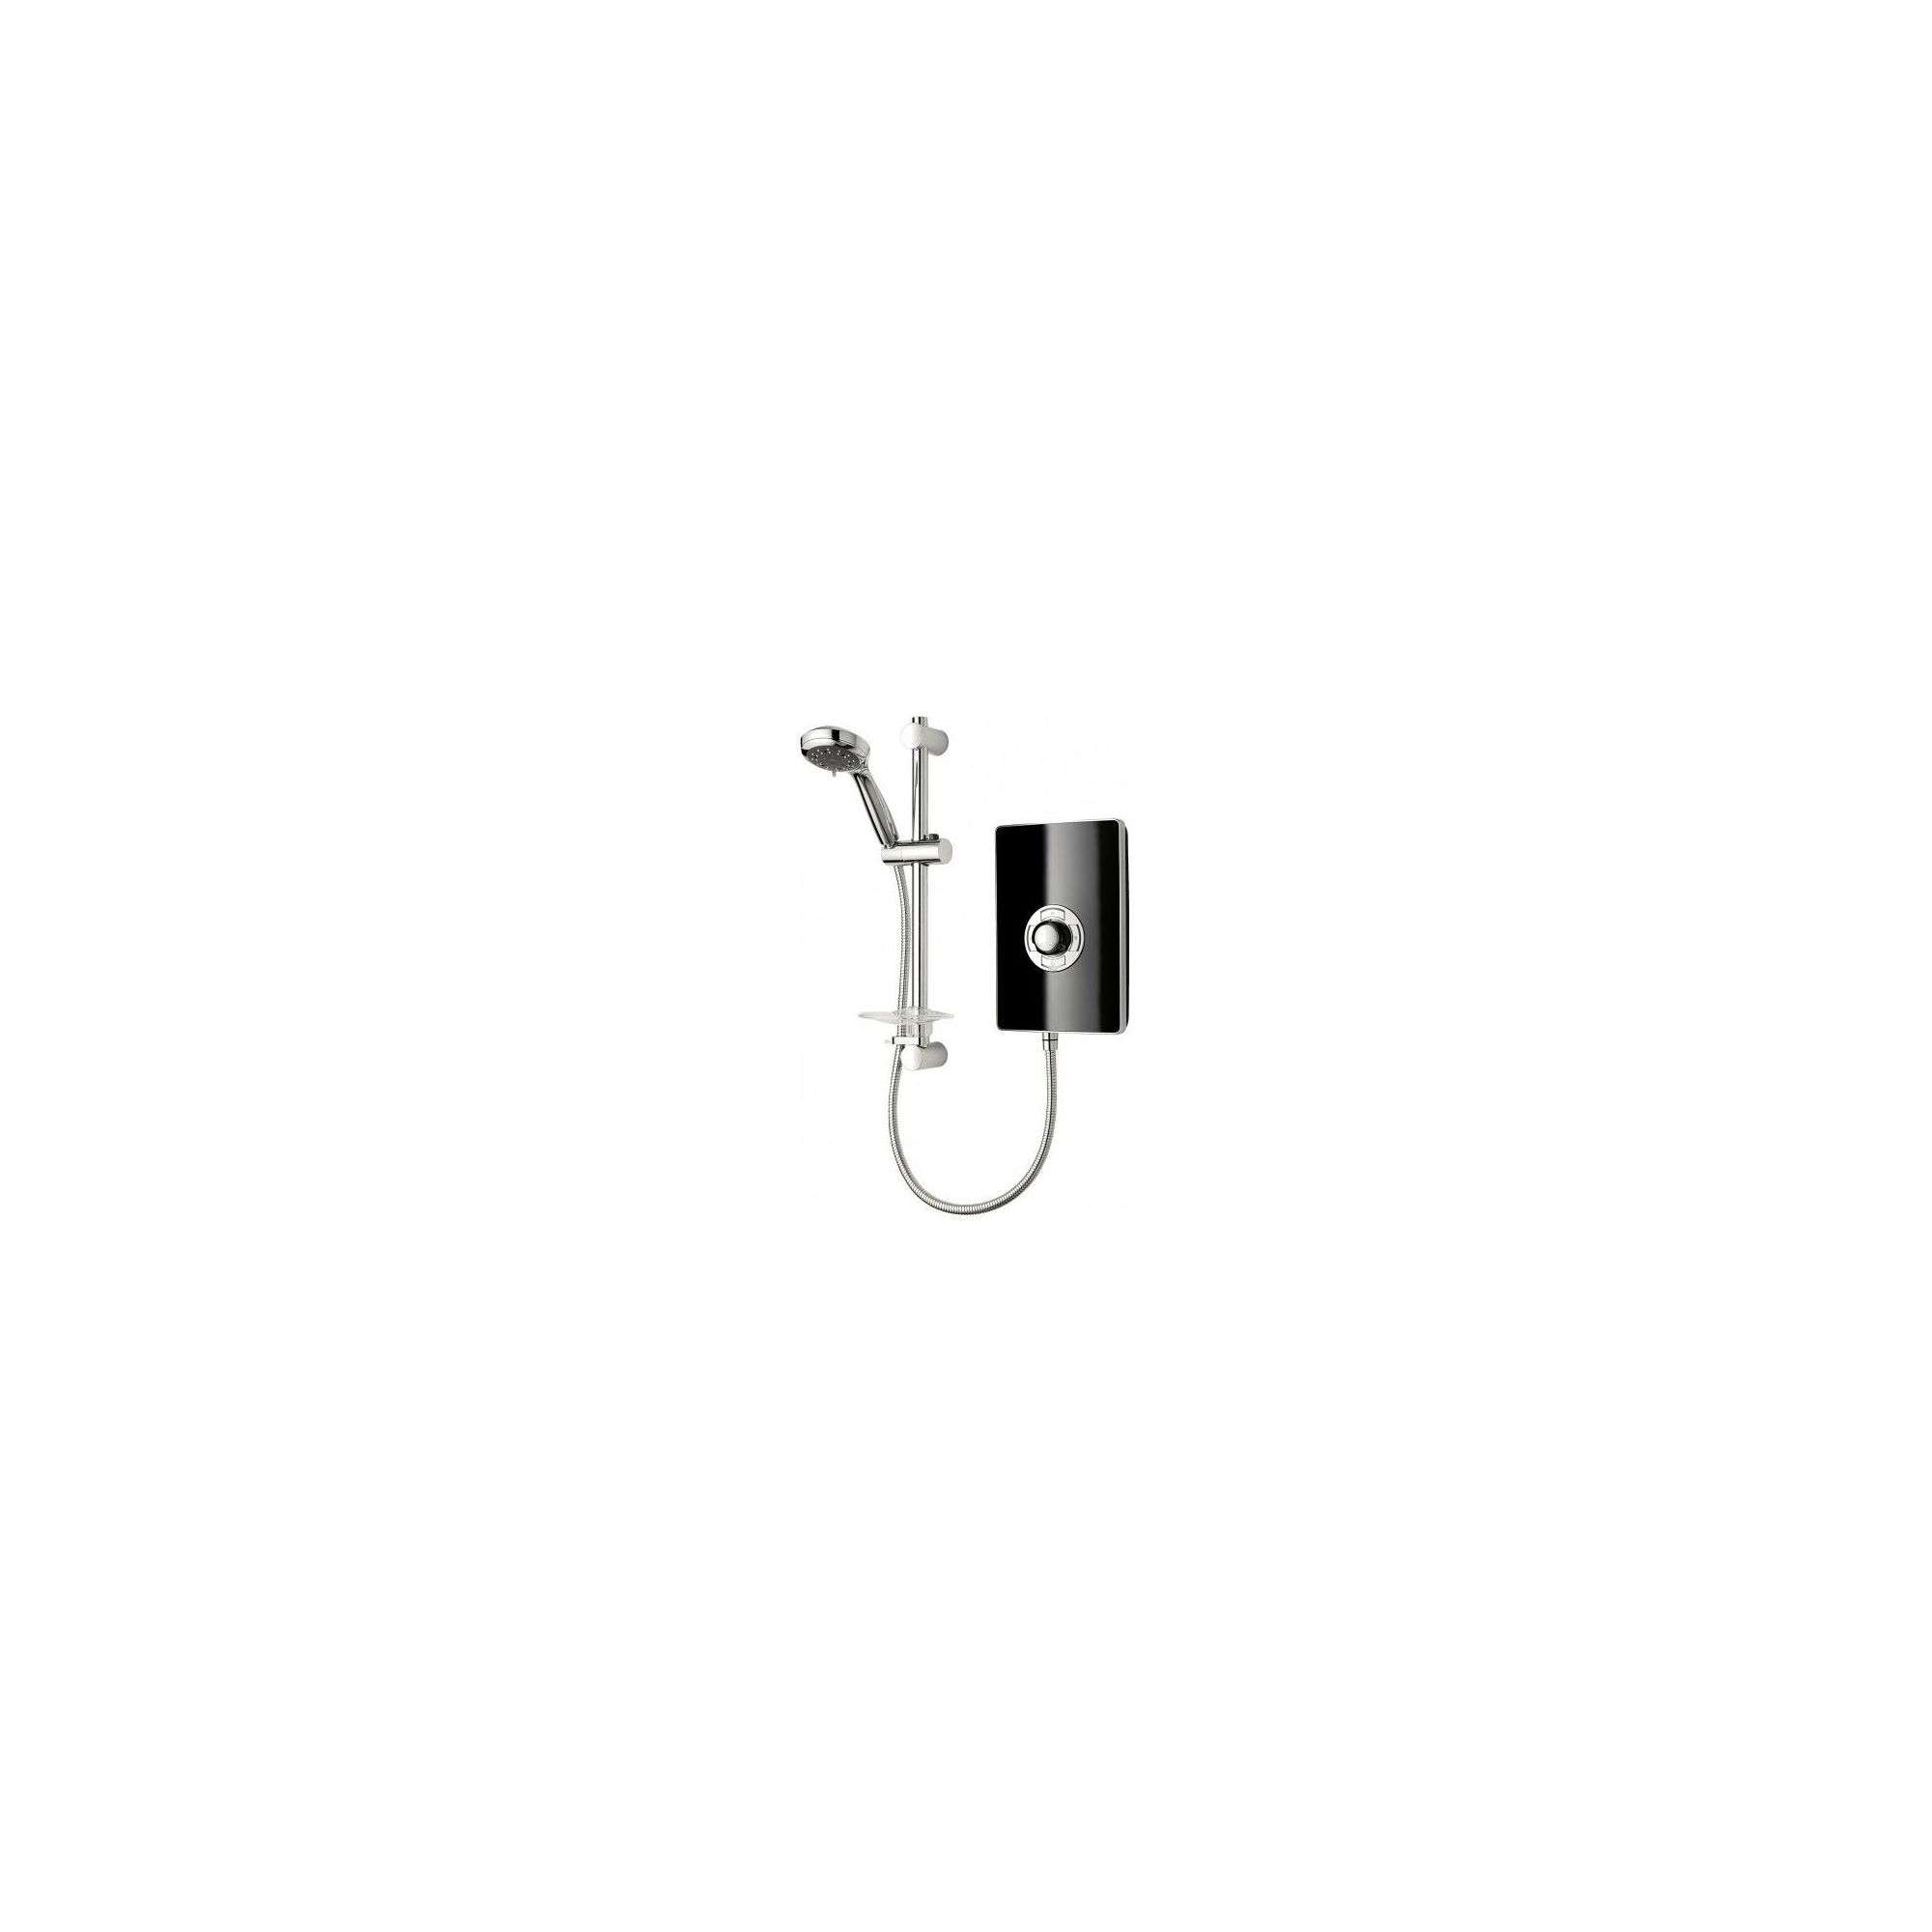 Triton Aspirante Electric Shower Black Gloss 8.5 kW at Tesco Direct